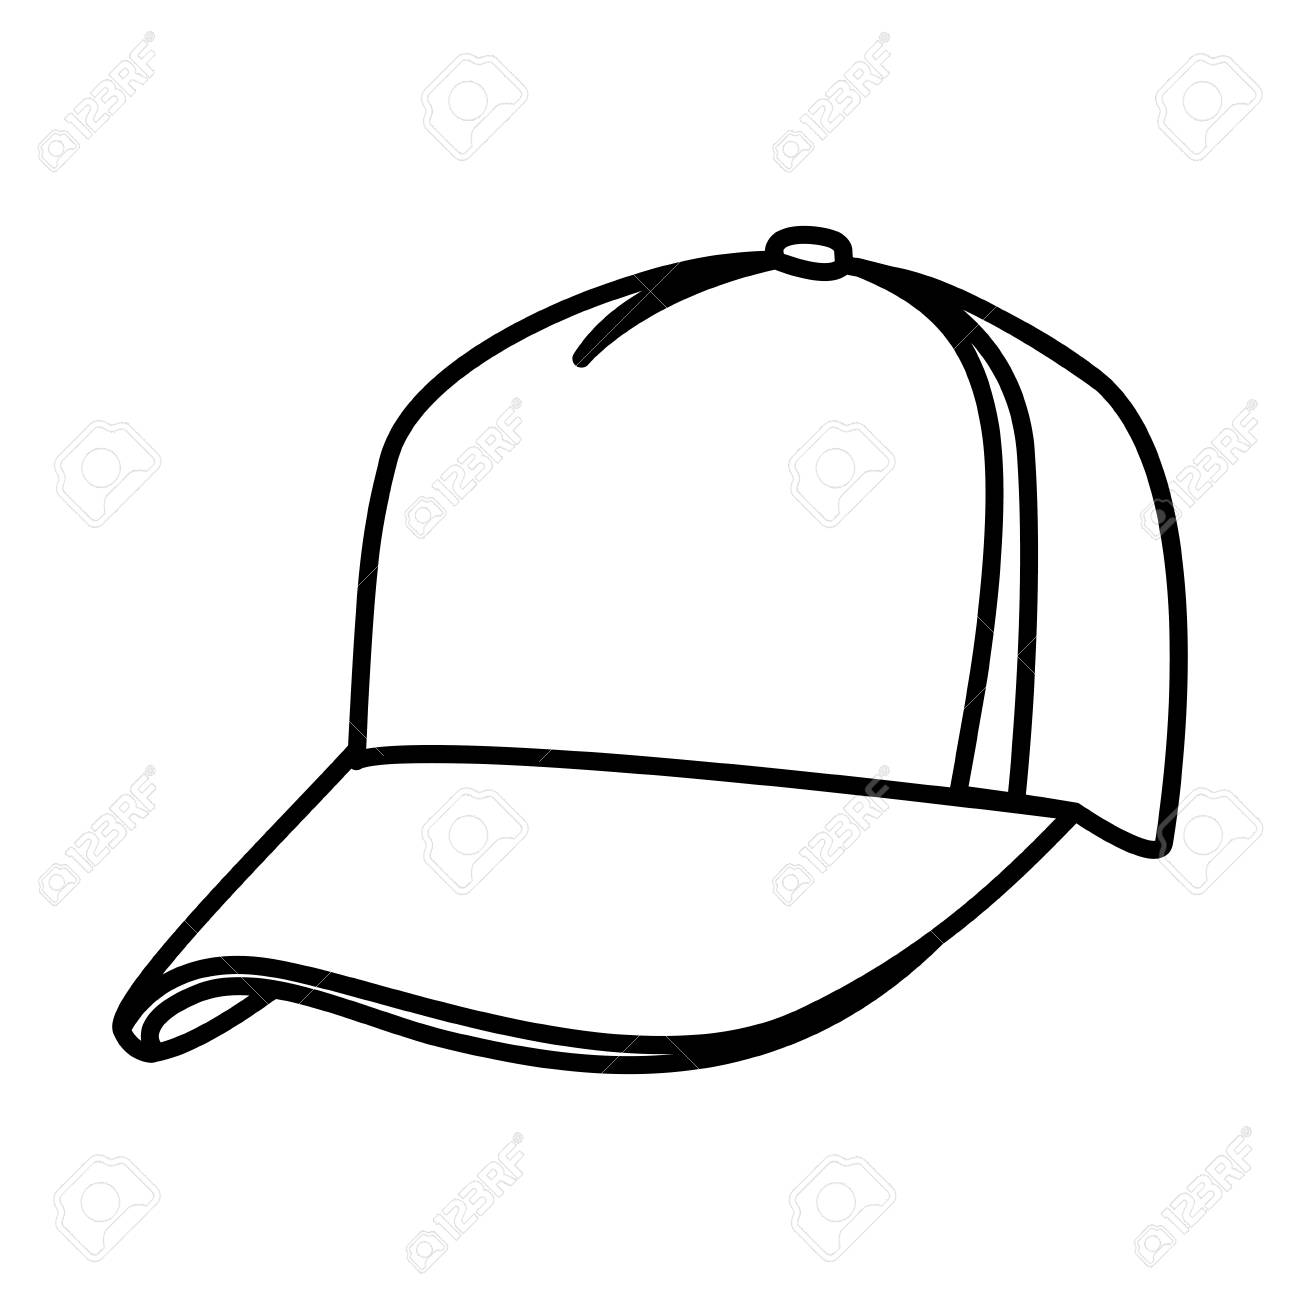 monochrome contour of baseball cap vector illustration royalty free rh 123rf com White Baseball Hat Vector baseball hat vector template